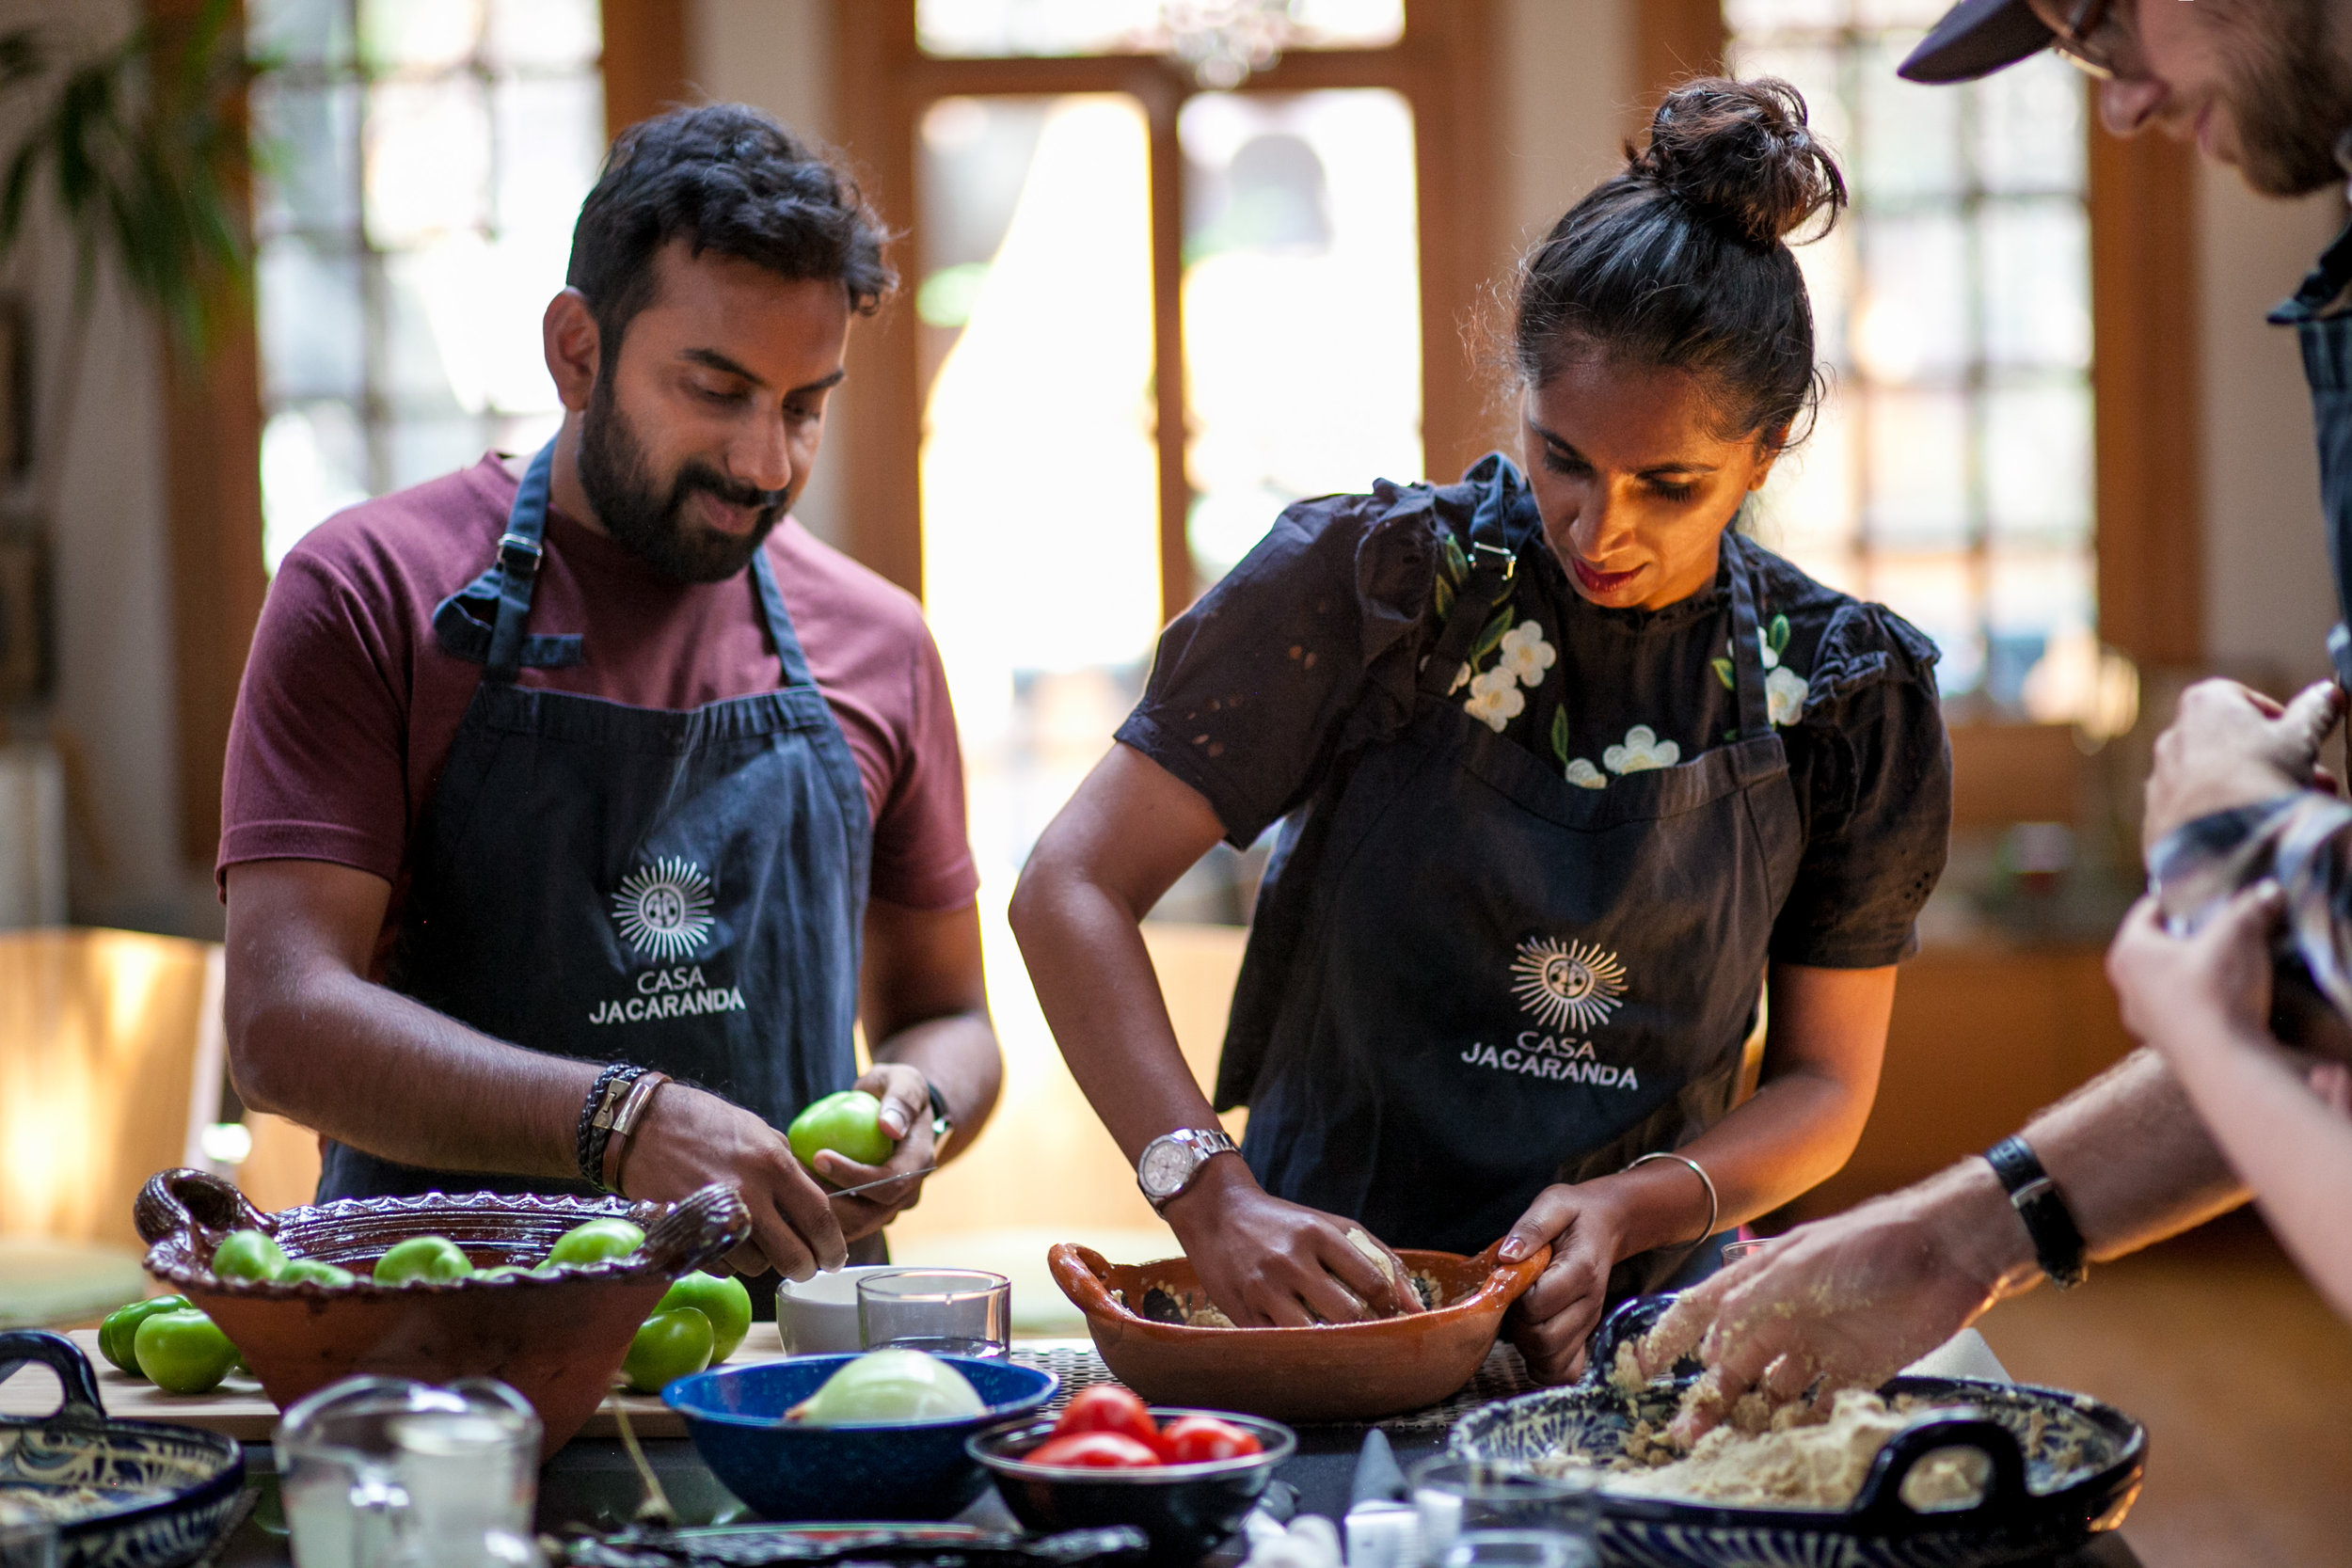 couple making Mexican food in a cooking class